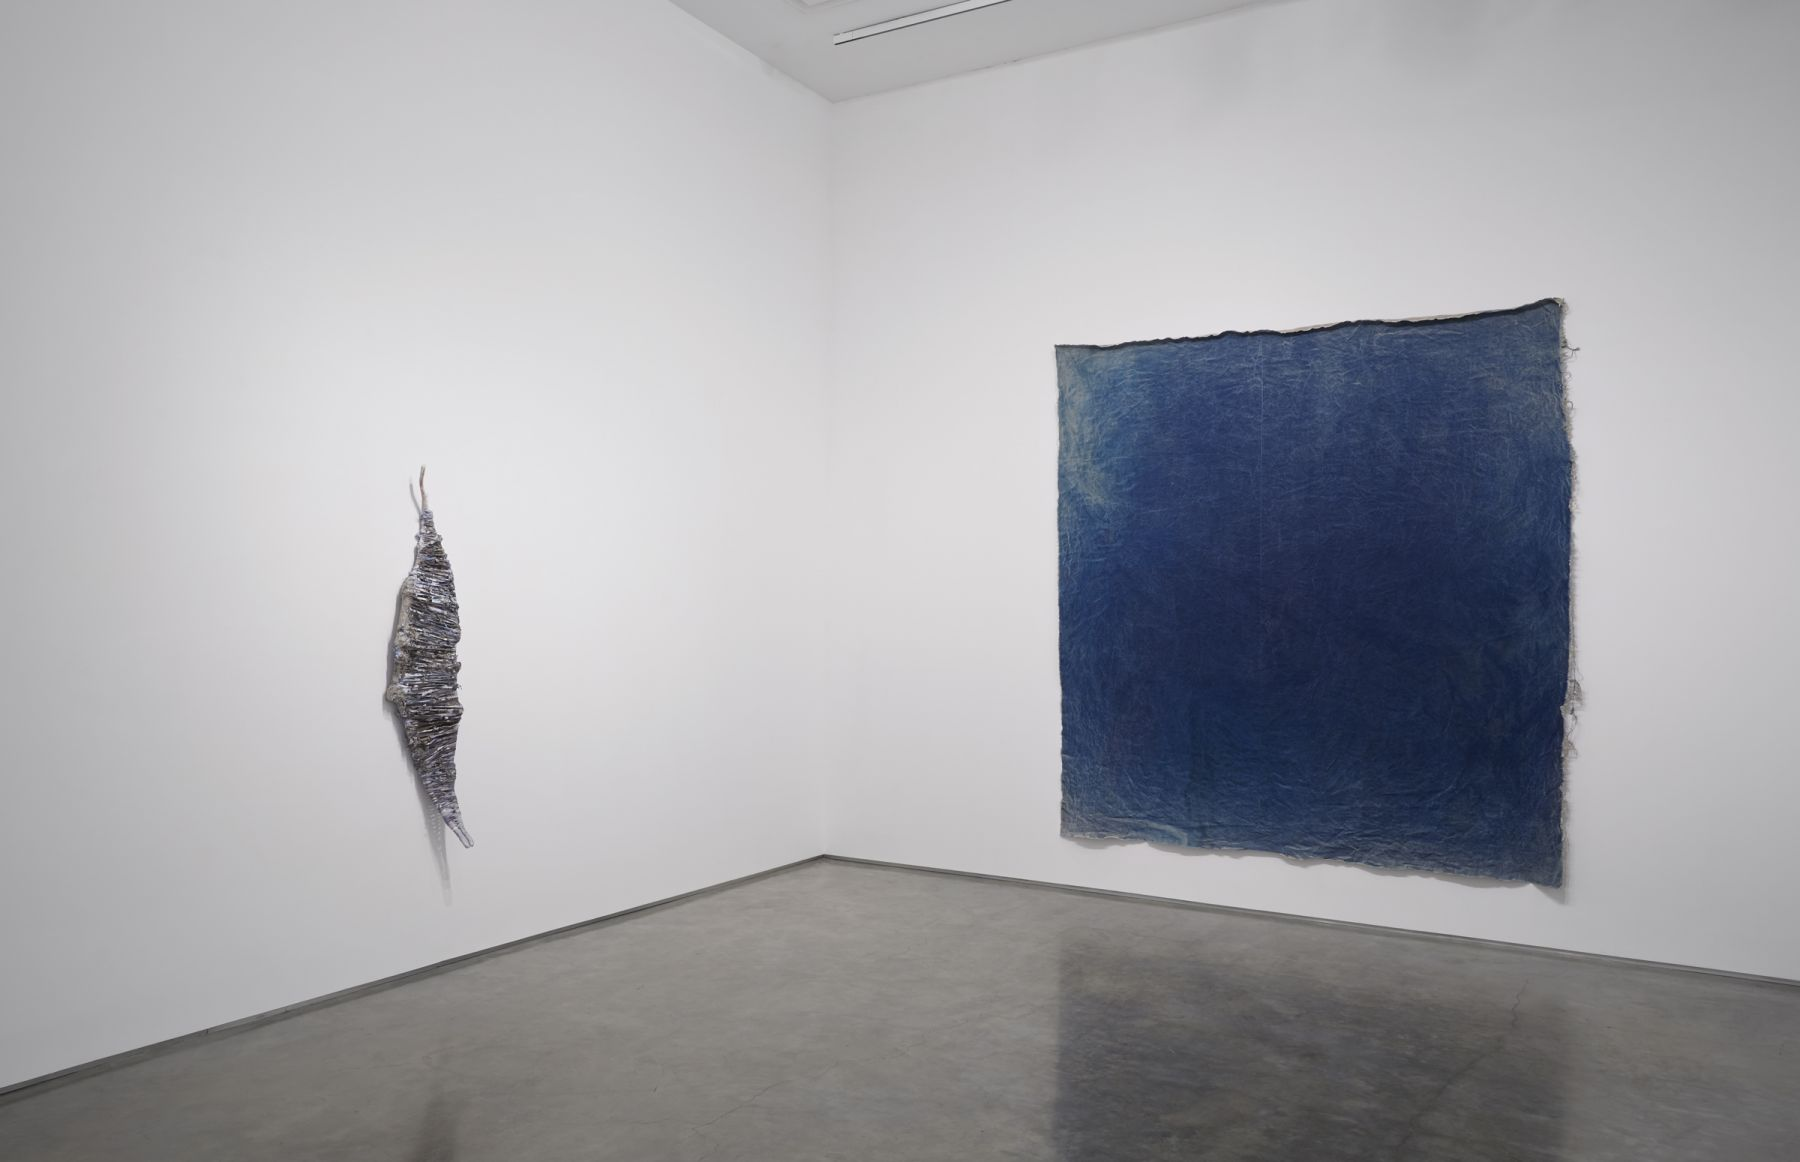 Installation View, Jay Heikes: Walkabout, Marianne Boesky Gallery, New York